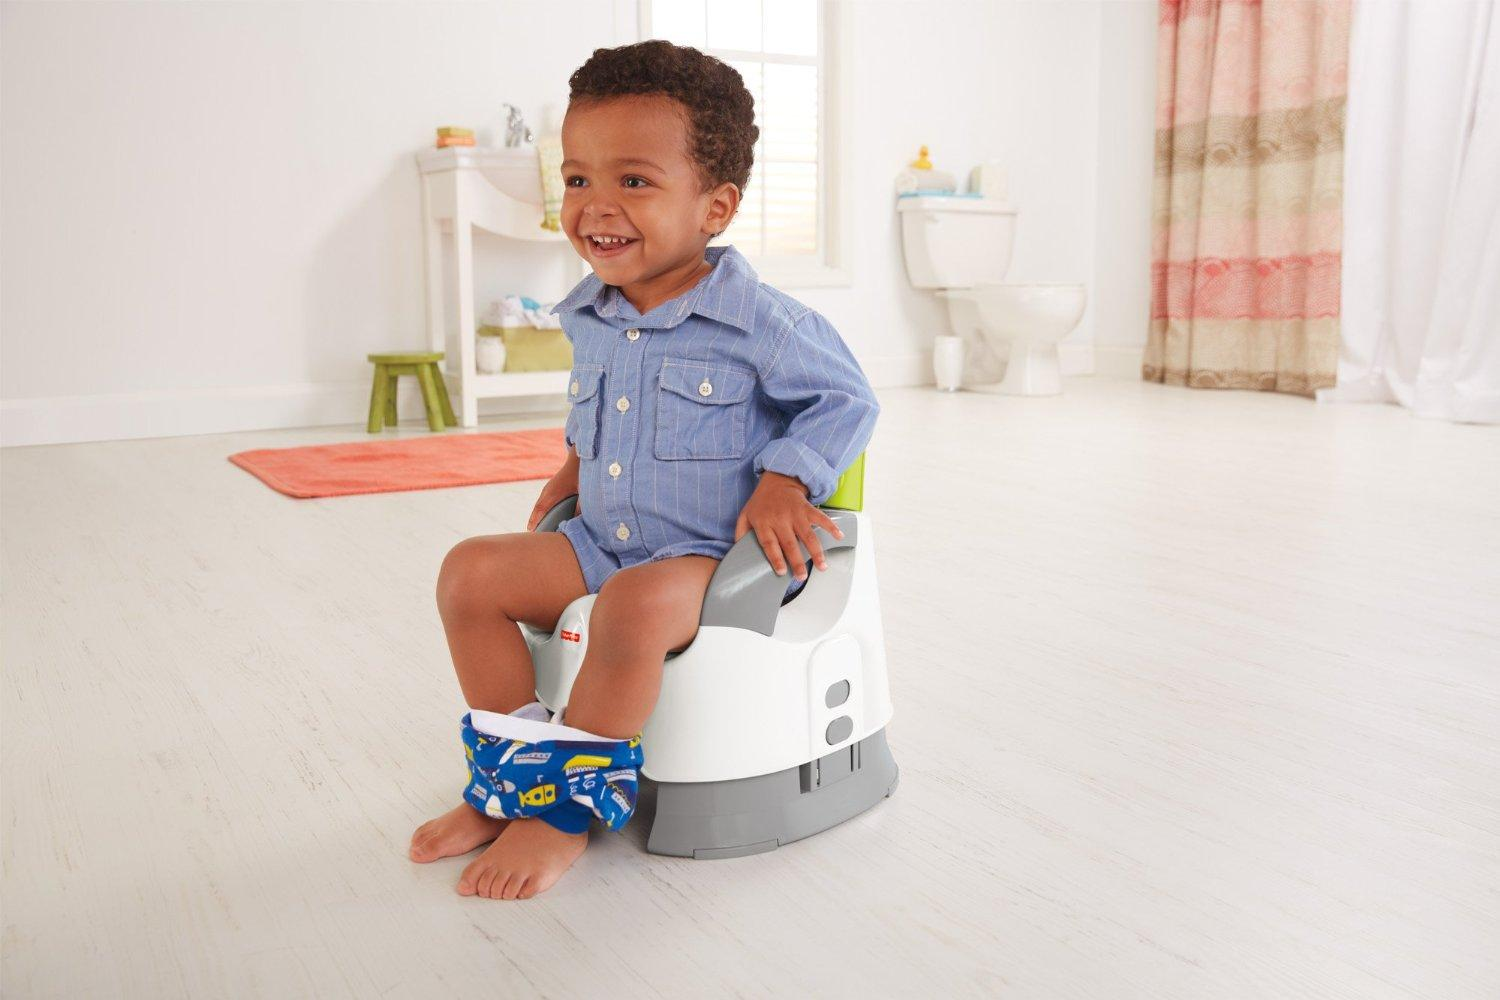 potty chairs for larger toddlers bar chair accessories toddler baby kids pottytrainer portable